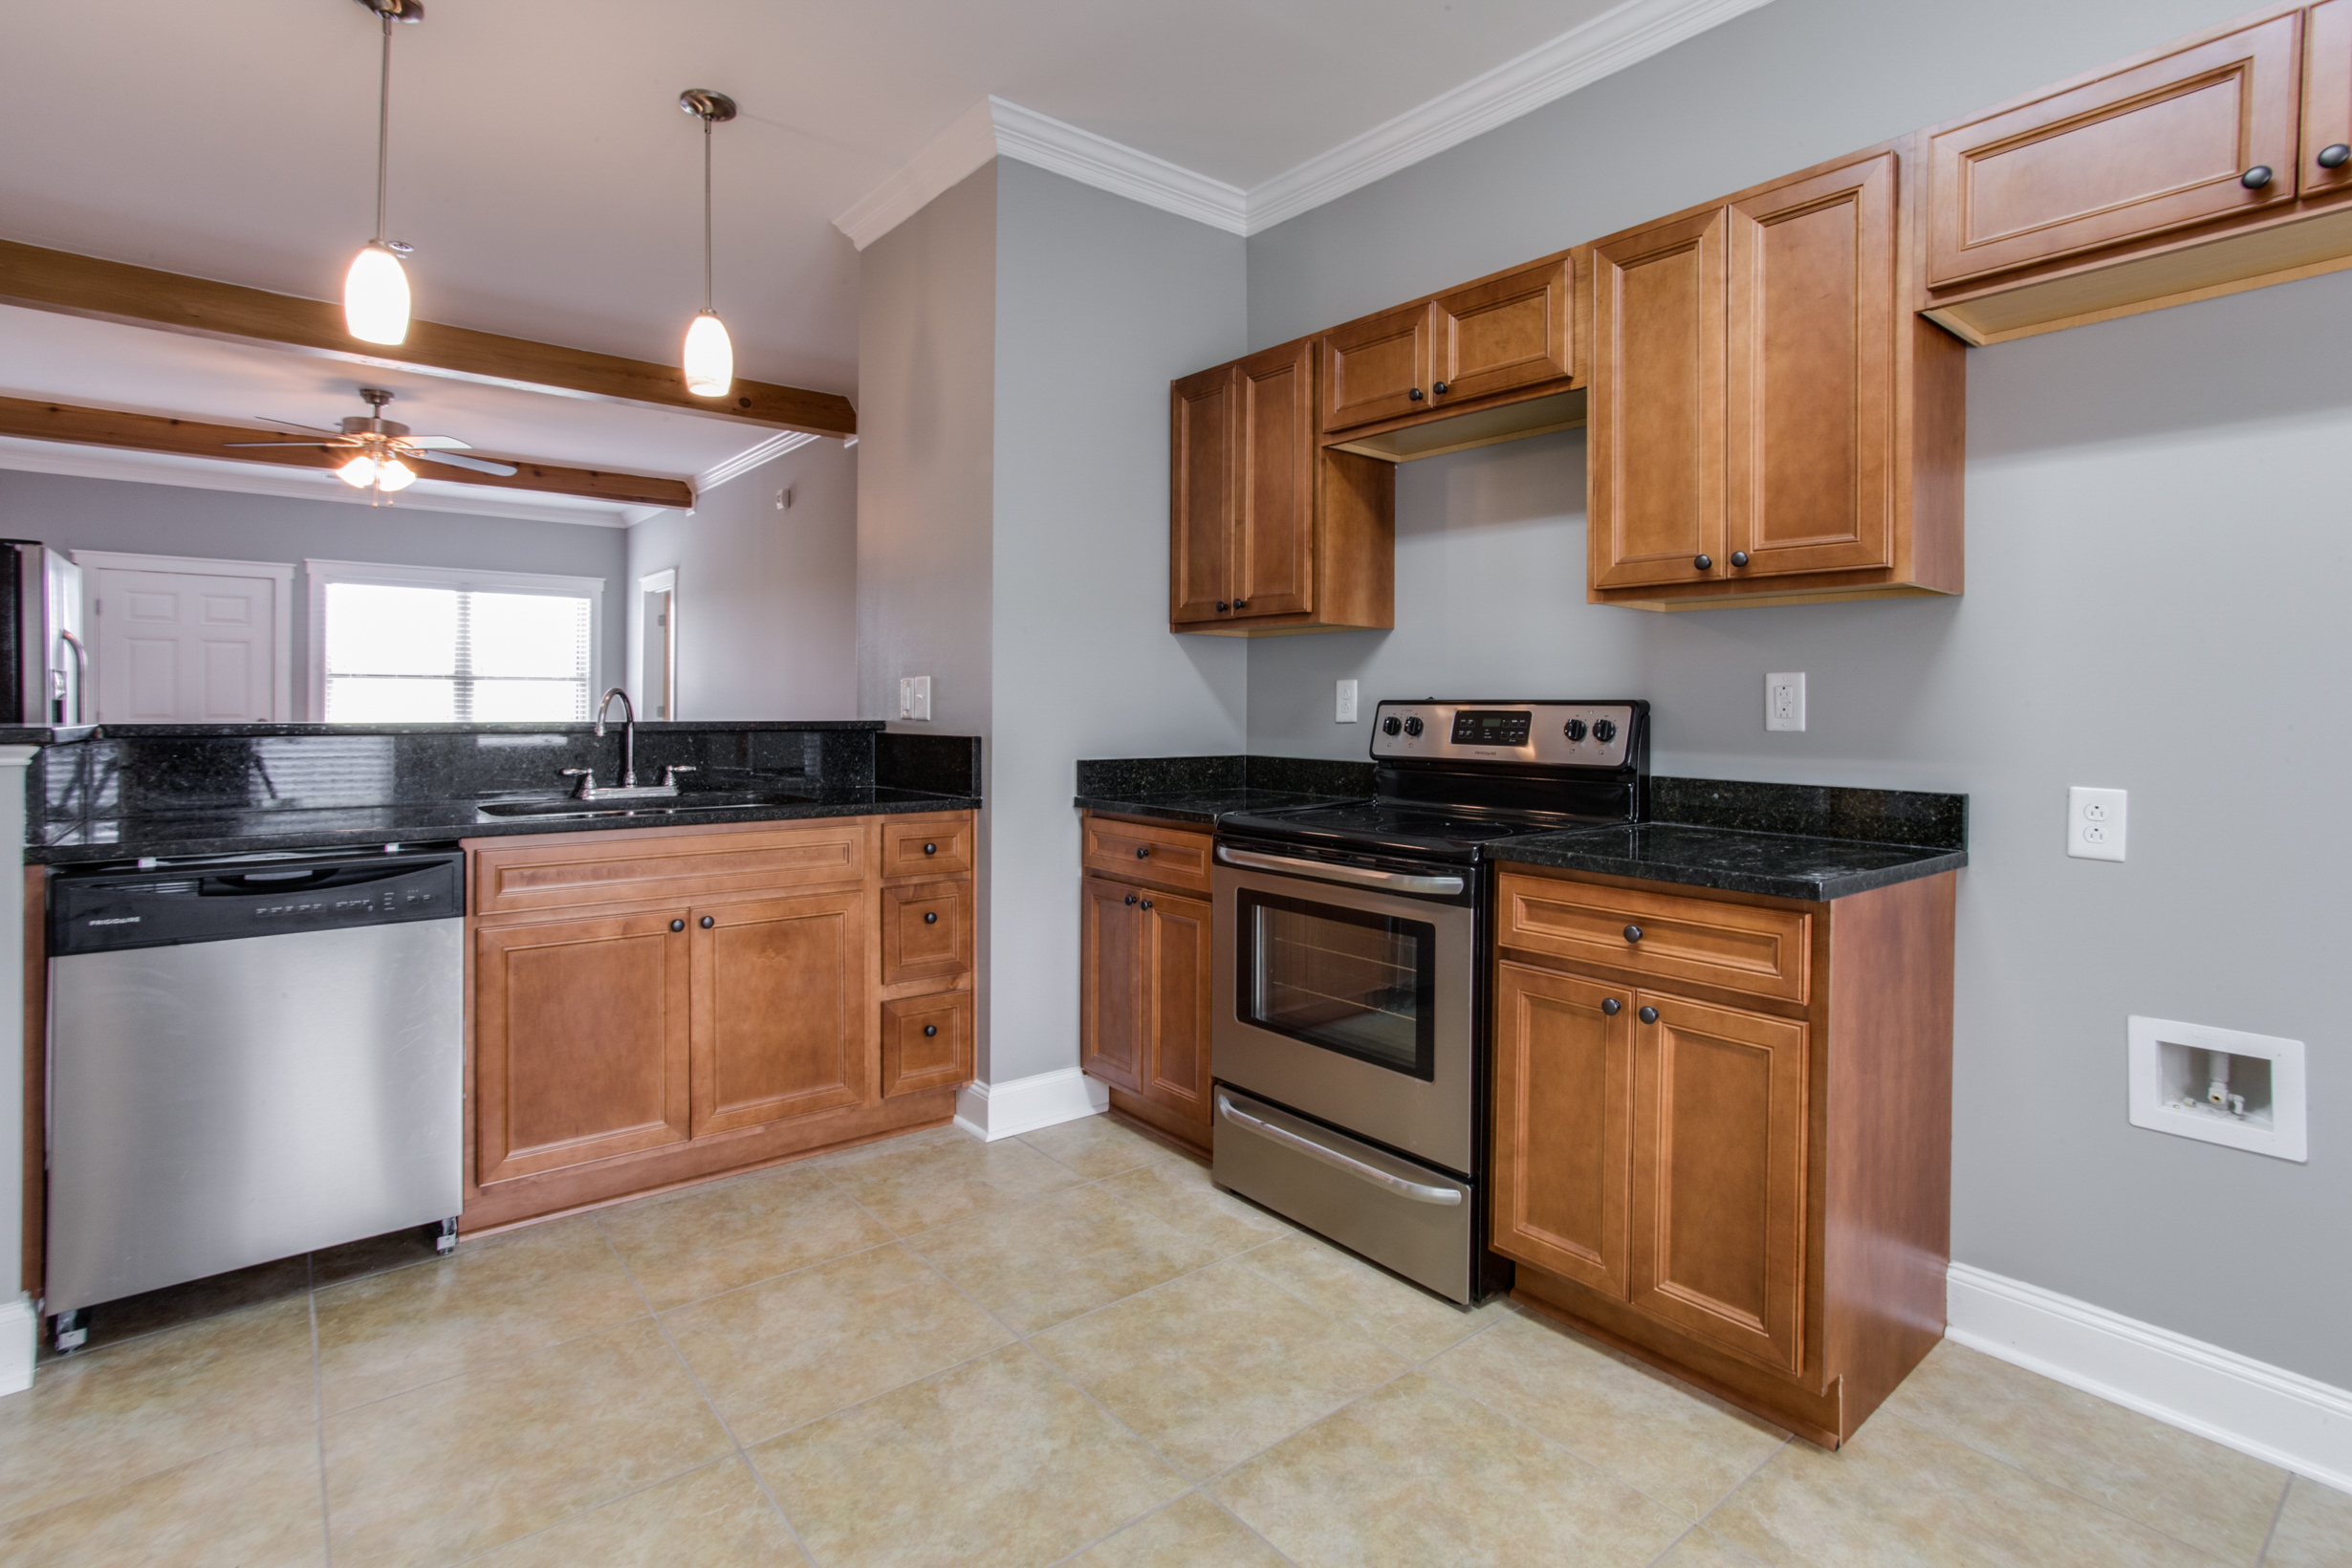 Whistlebury-Walk-Rent-Athens-56